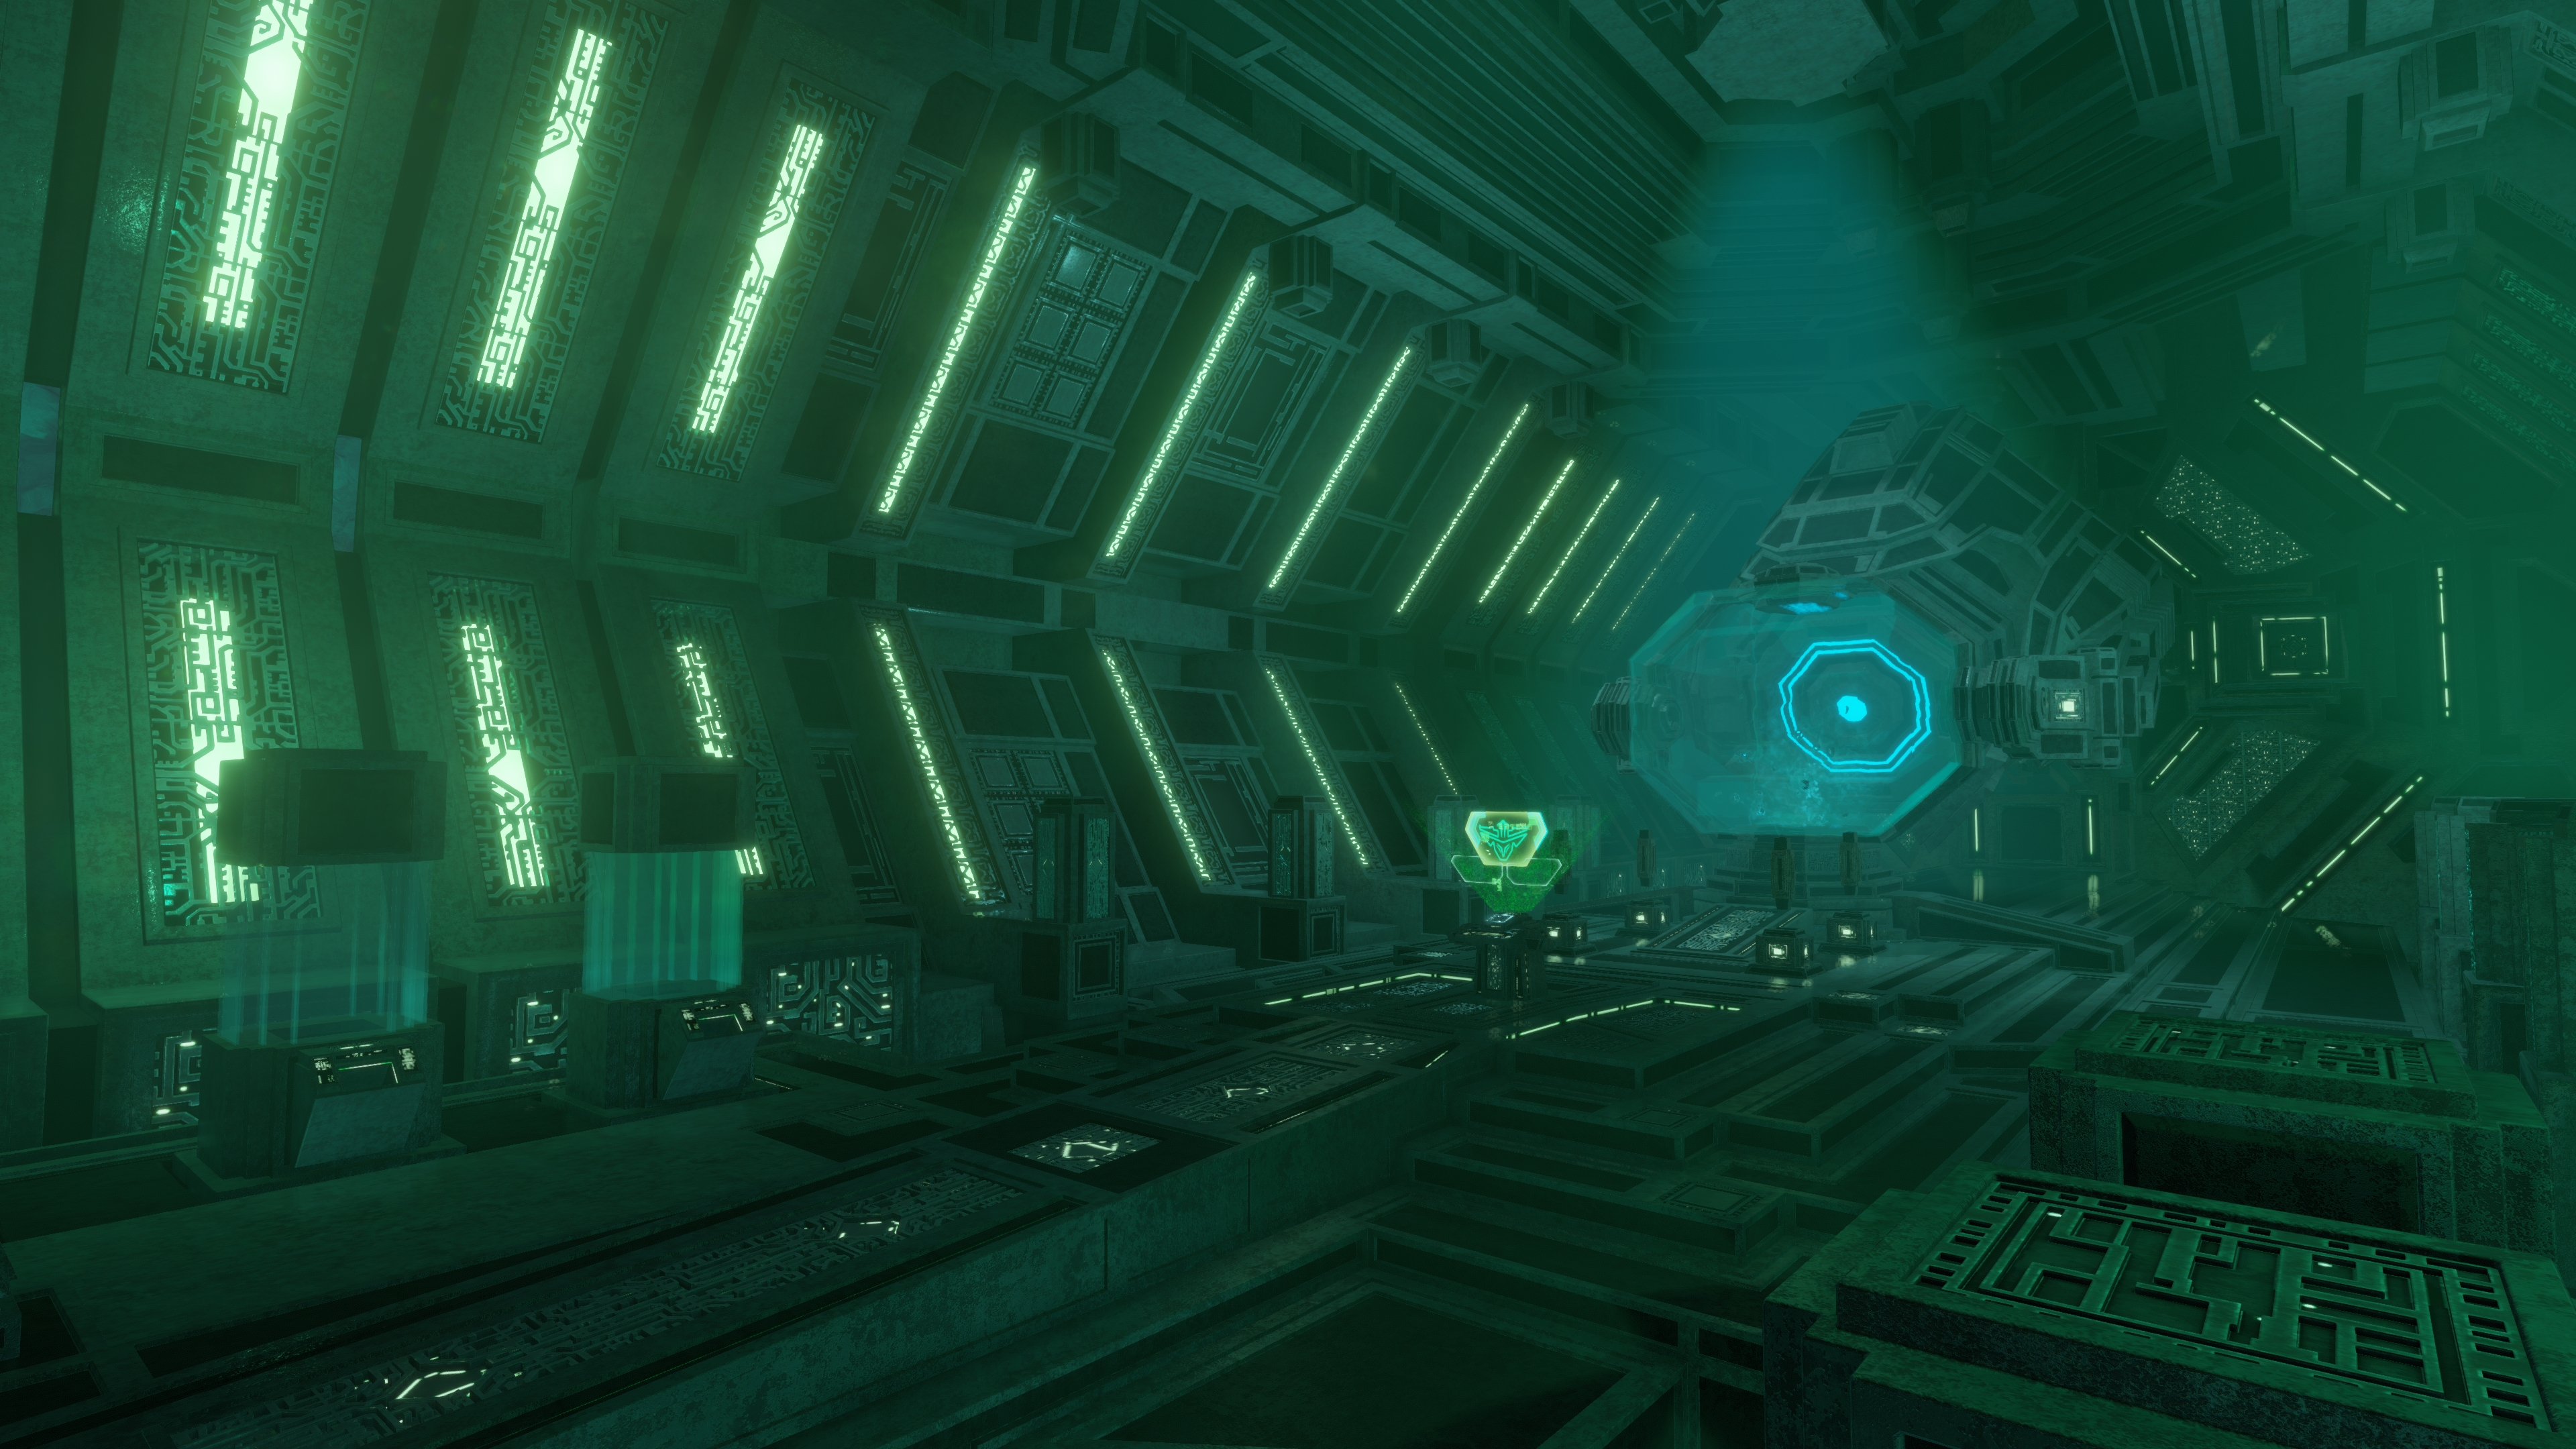 Fabricator Base Subnautica Below Zero Wiki Fandom Check our subnautica map out now for more information! fabricator base subnautica below